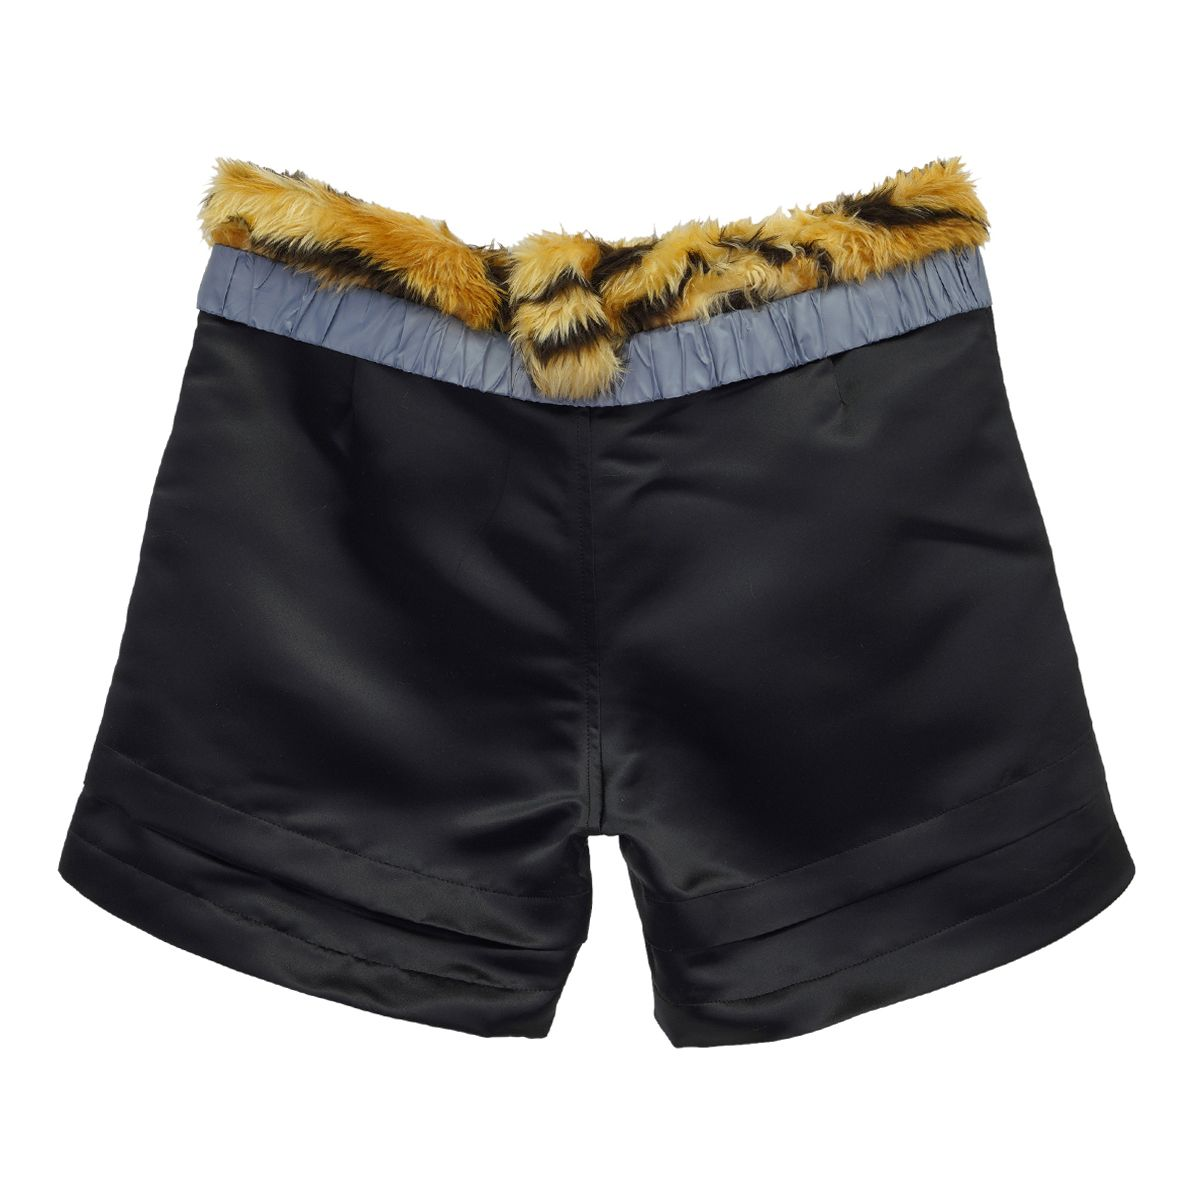 NICOMEDE SATIN SHORTS WITH TIGER WAISTBAND SHORTS / BLACK